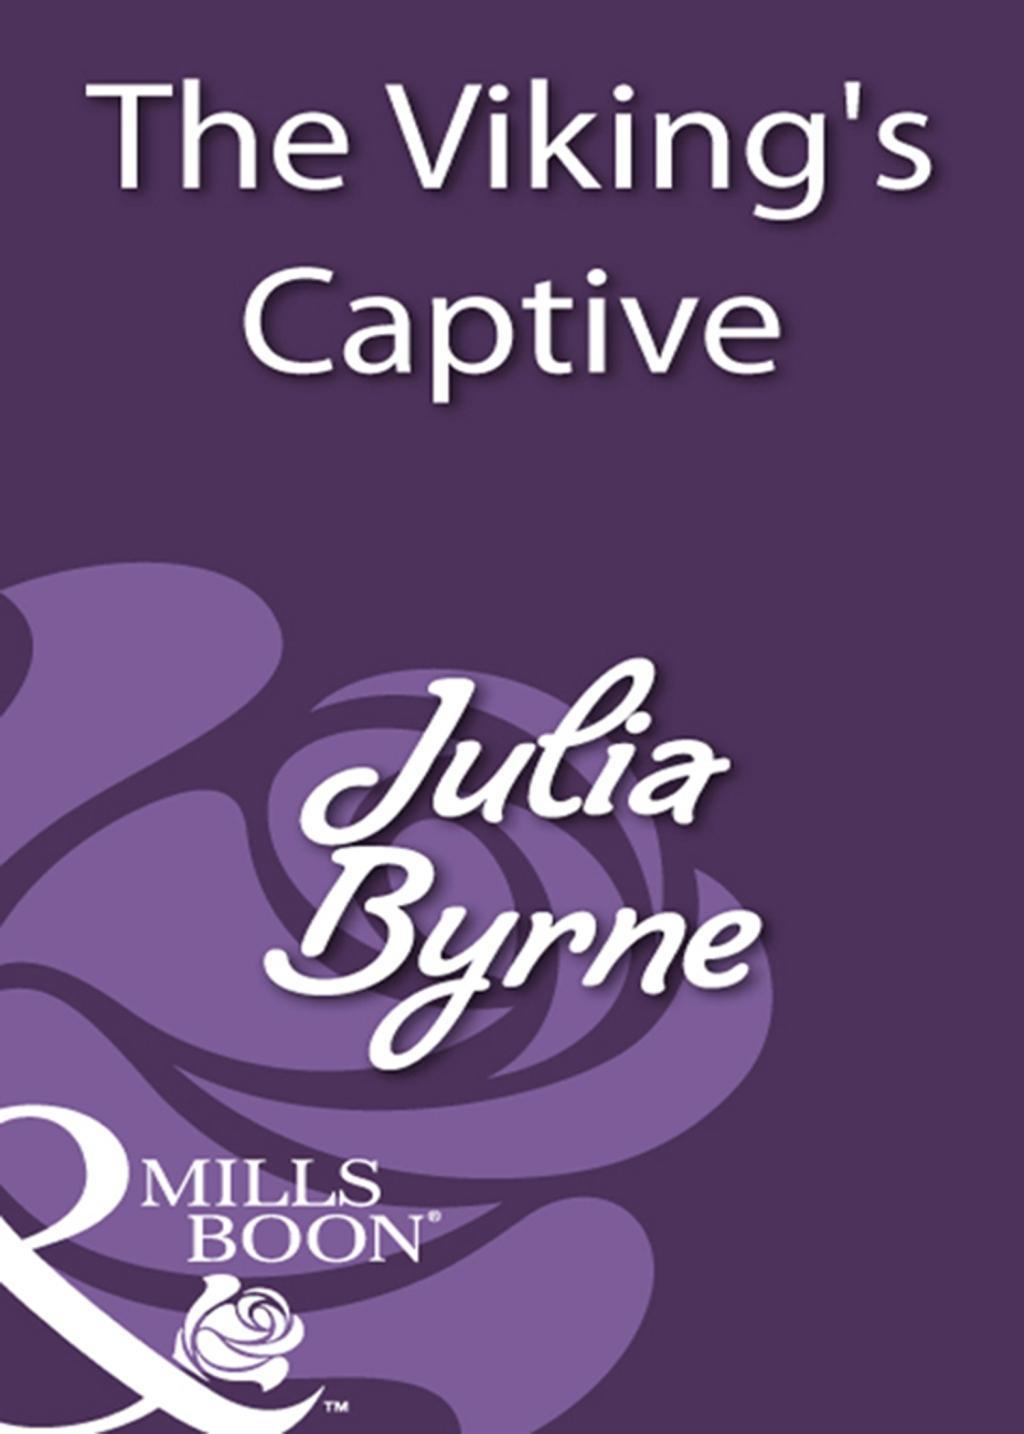 The Viking's Captive (Mills & Boon Historical)